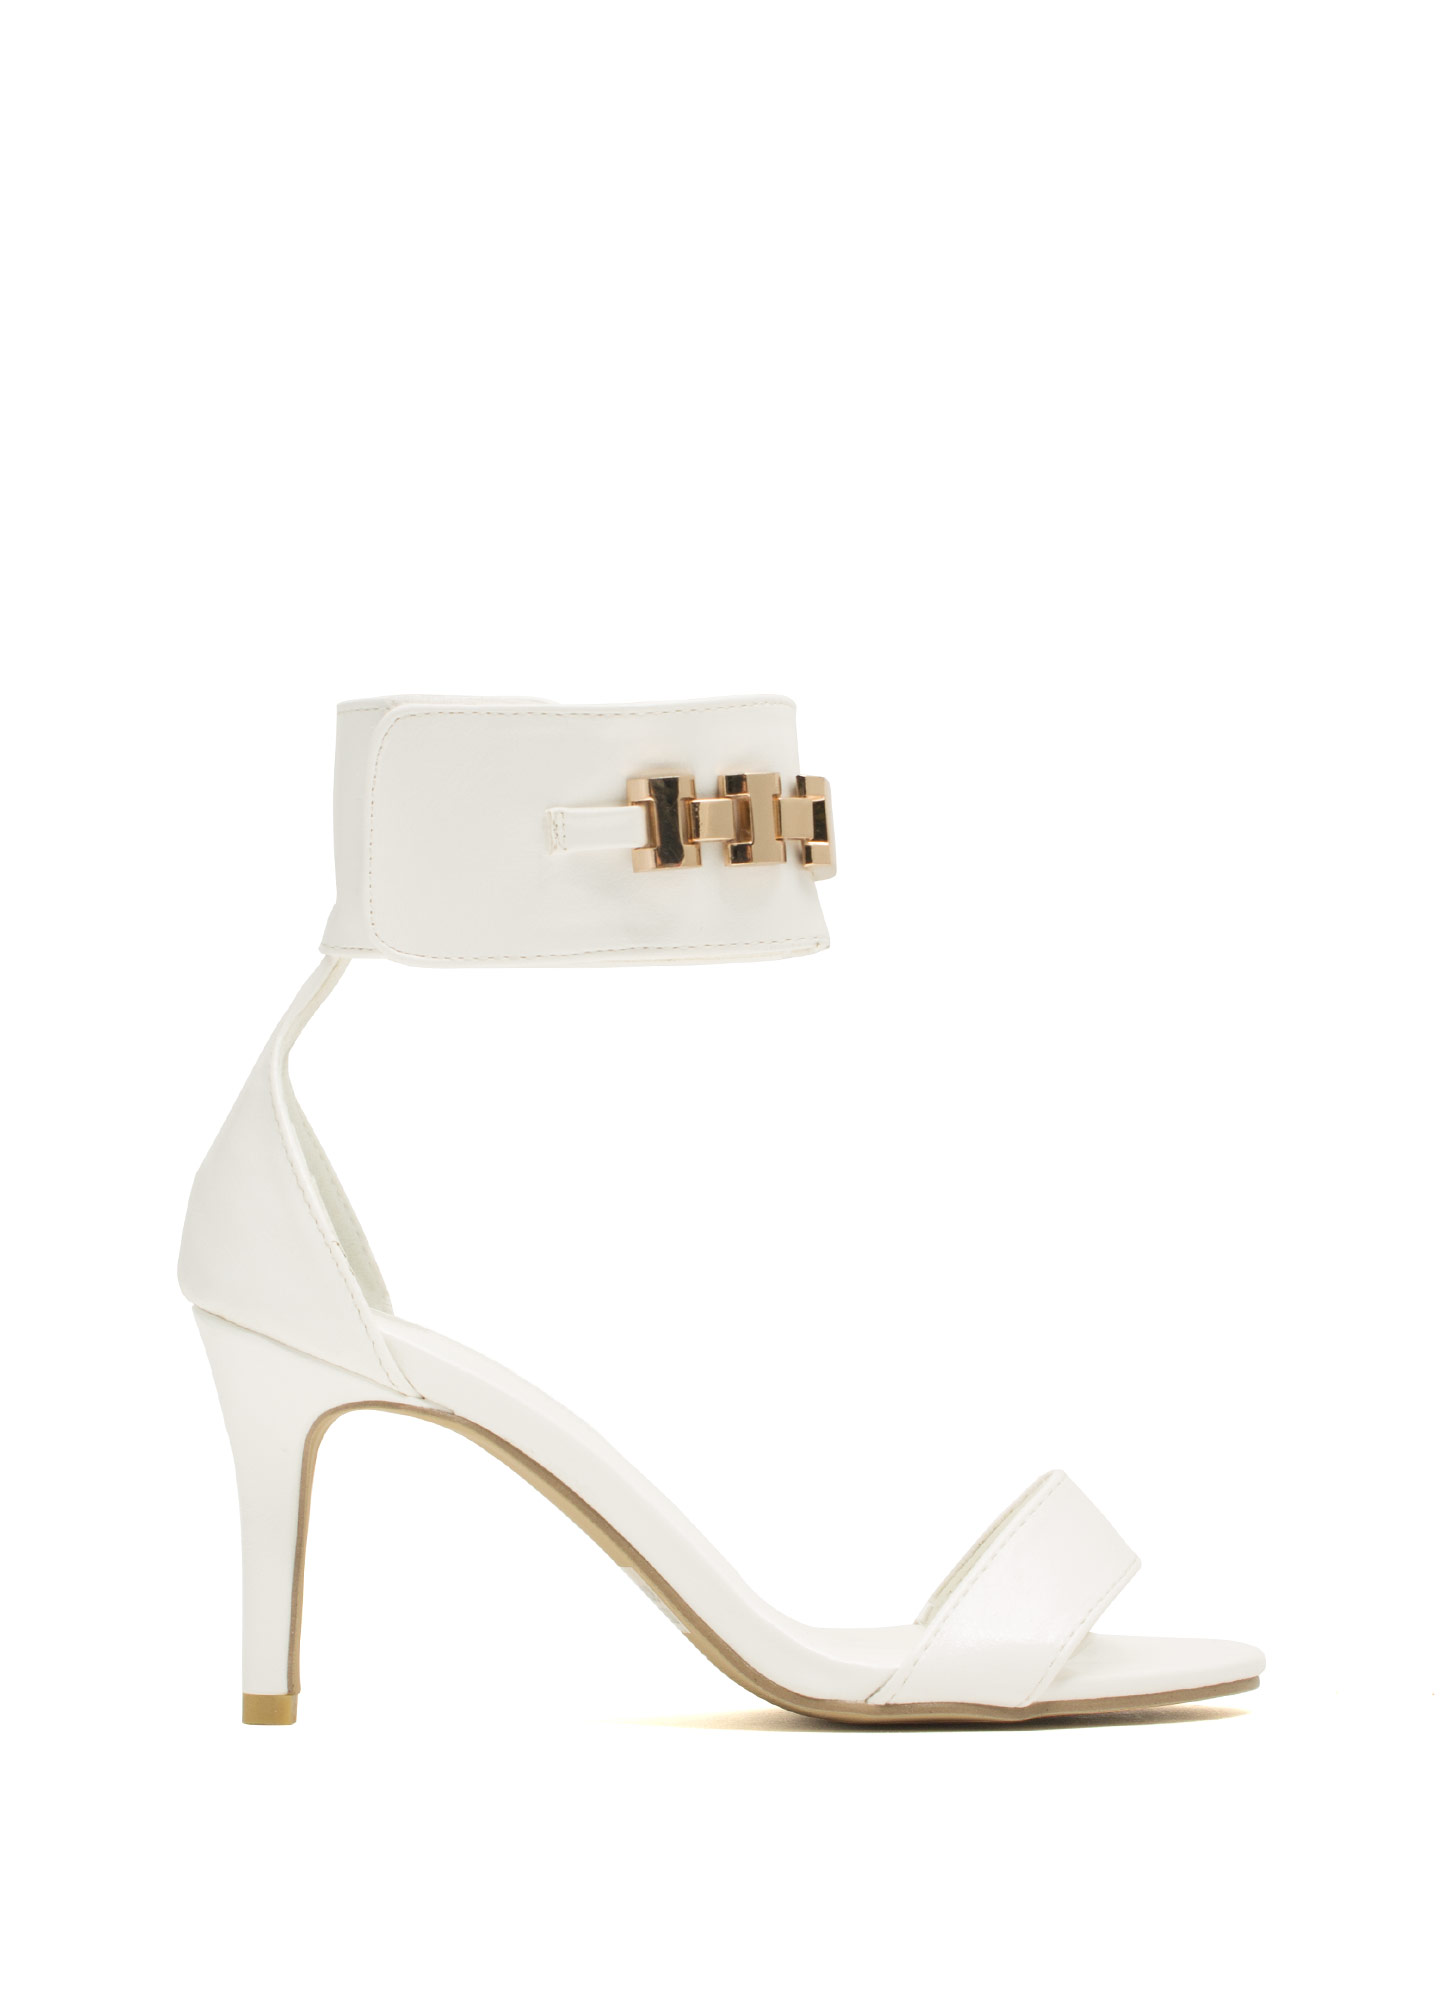 Show Your ID Chain Heels WHITE